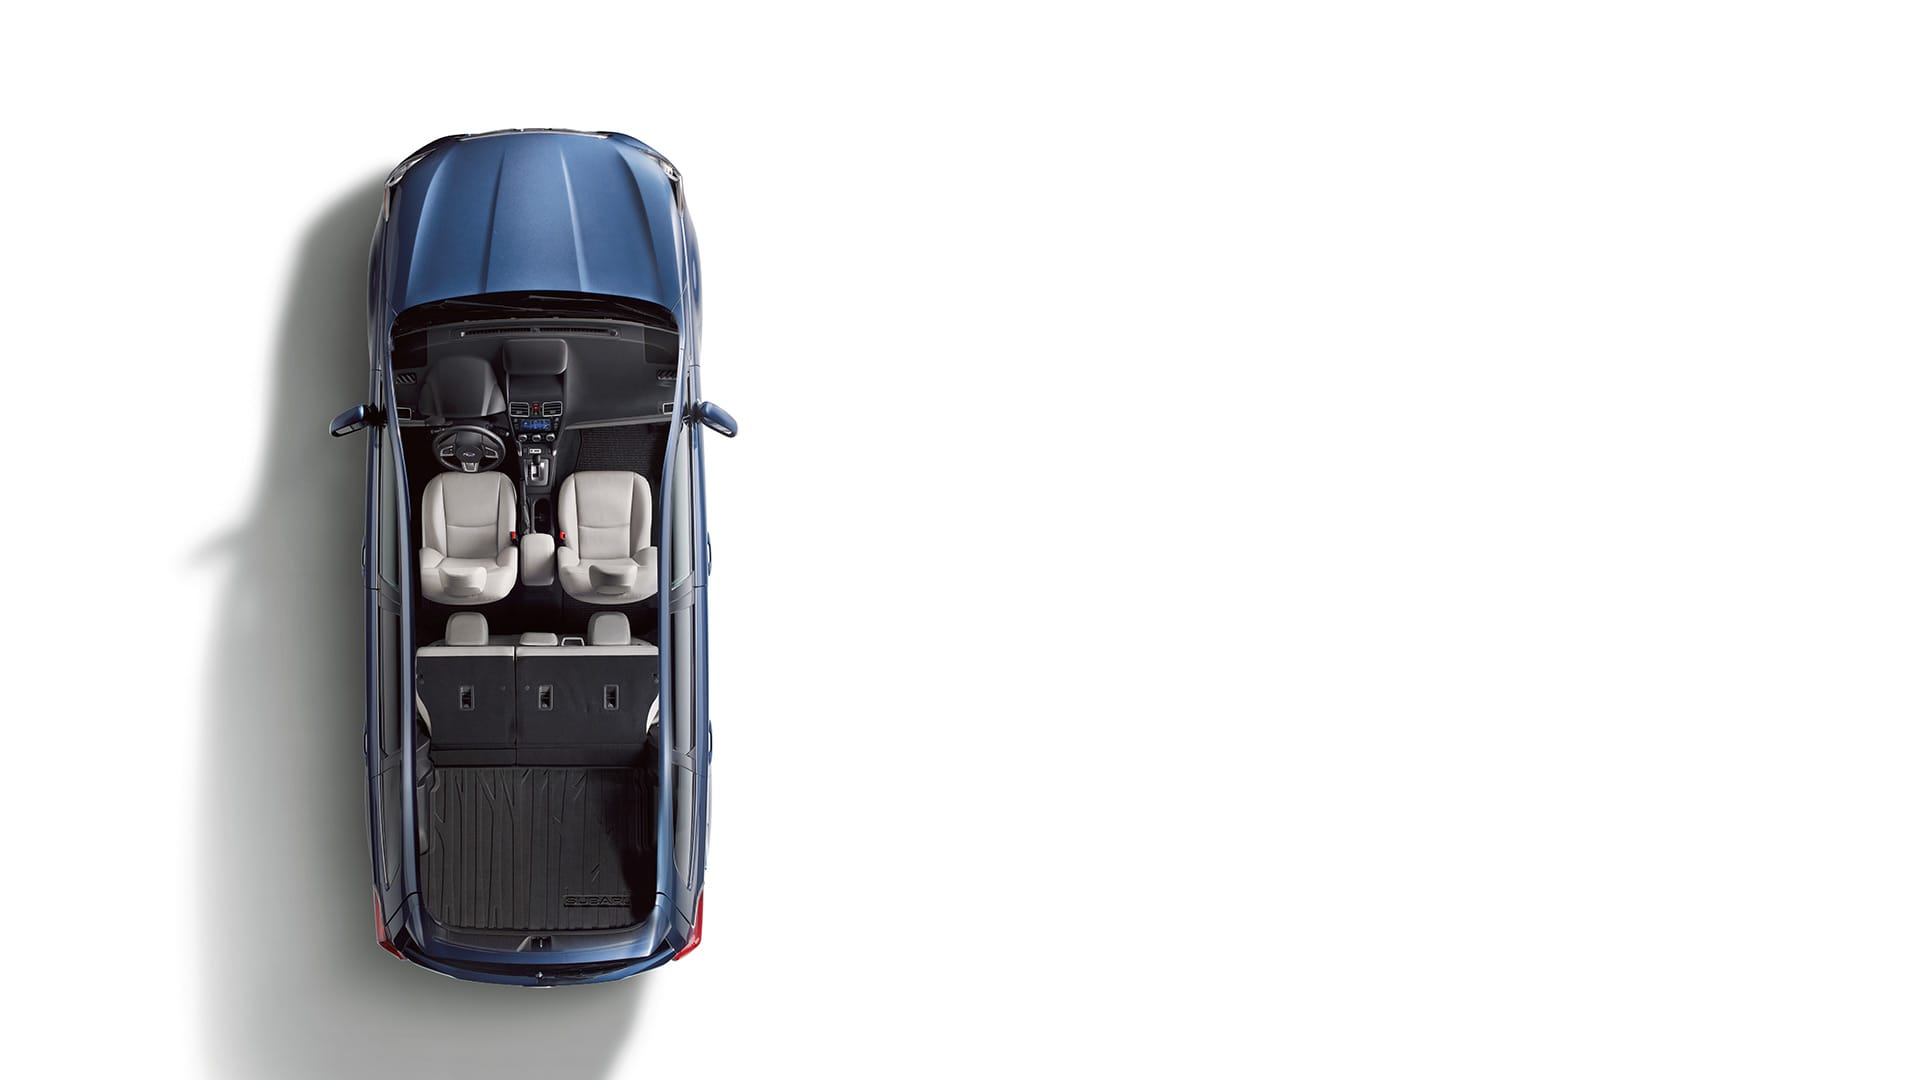 Get extra room in an instant. Standard on Touring trim levels, you can fold down the rear seatback with the simple flip of a switch to accommodate longer items.